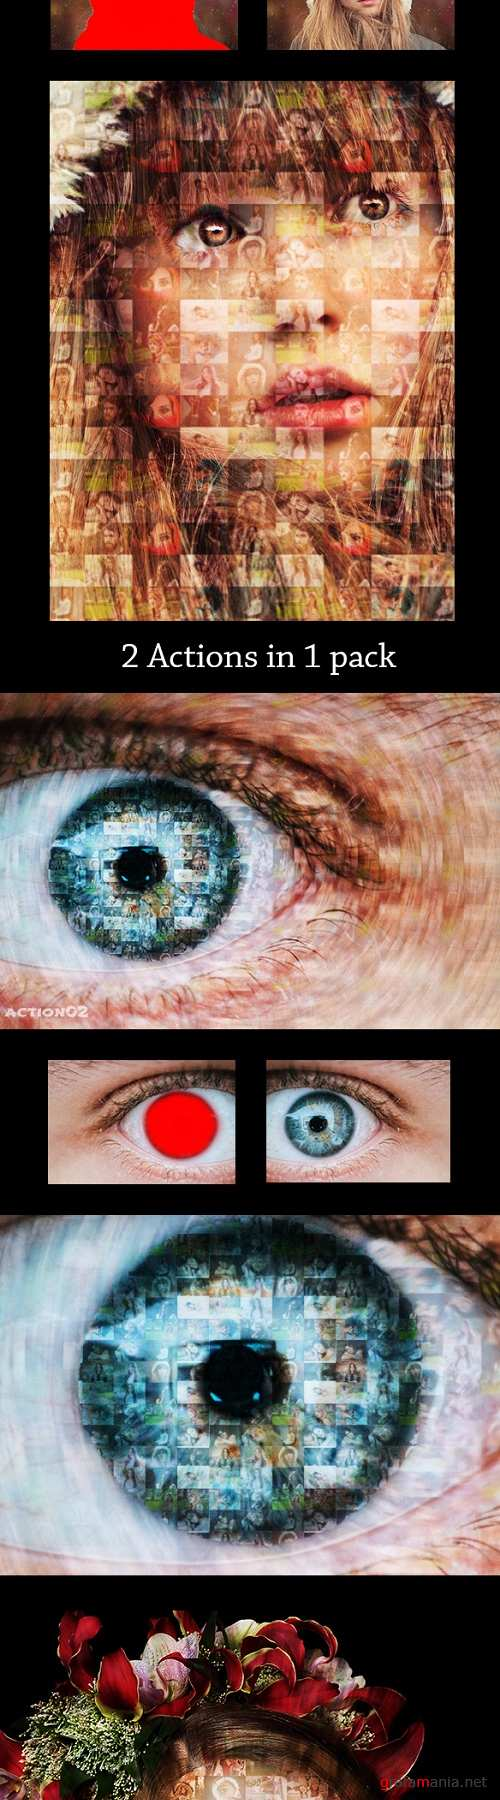 Photollage Ps Action Pack Ver 1.0 21194060